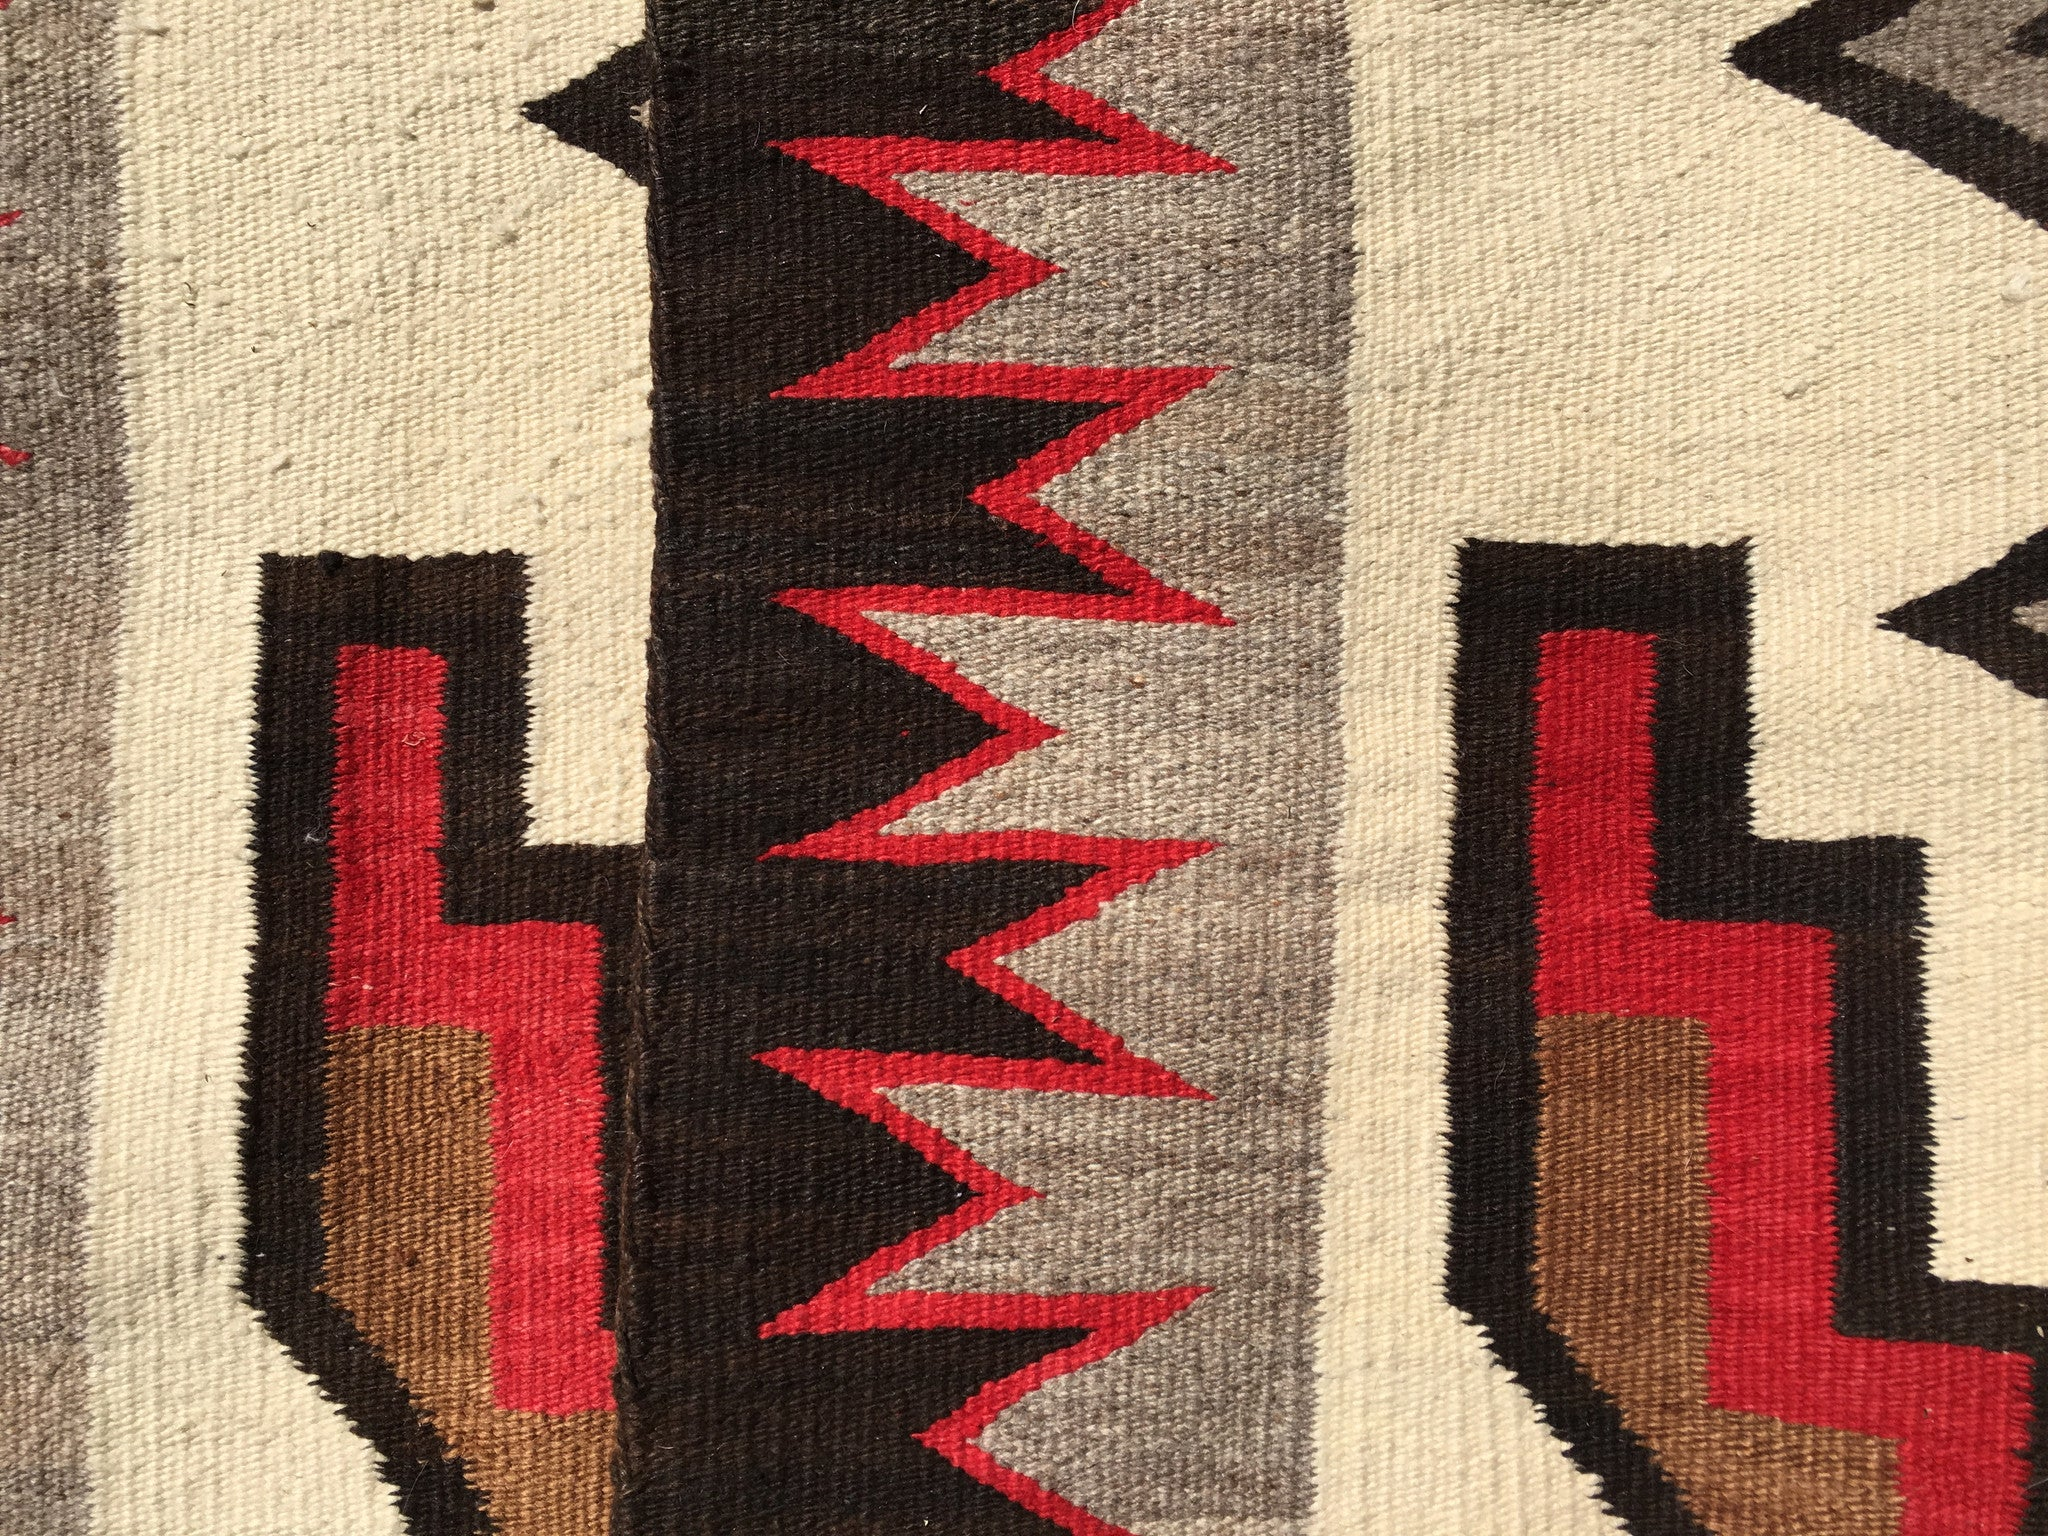 Navajo Rug Designs With Antique Jb Moore Navajo Rug Crystal Trading Post Storm Pattern Sold Rug Curator